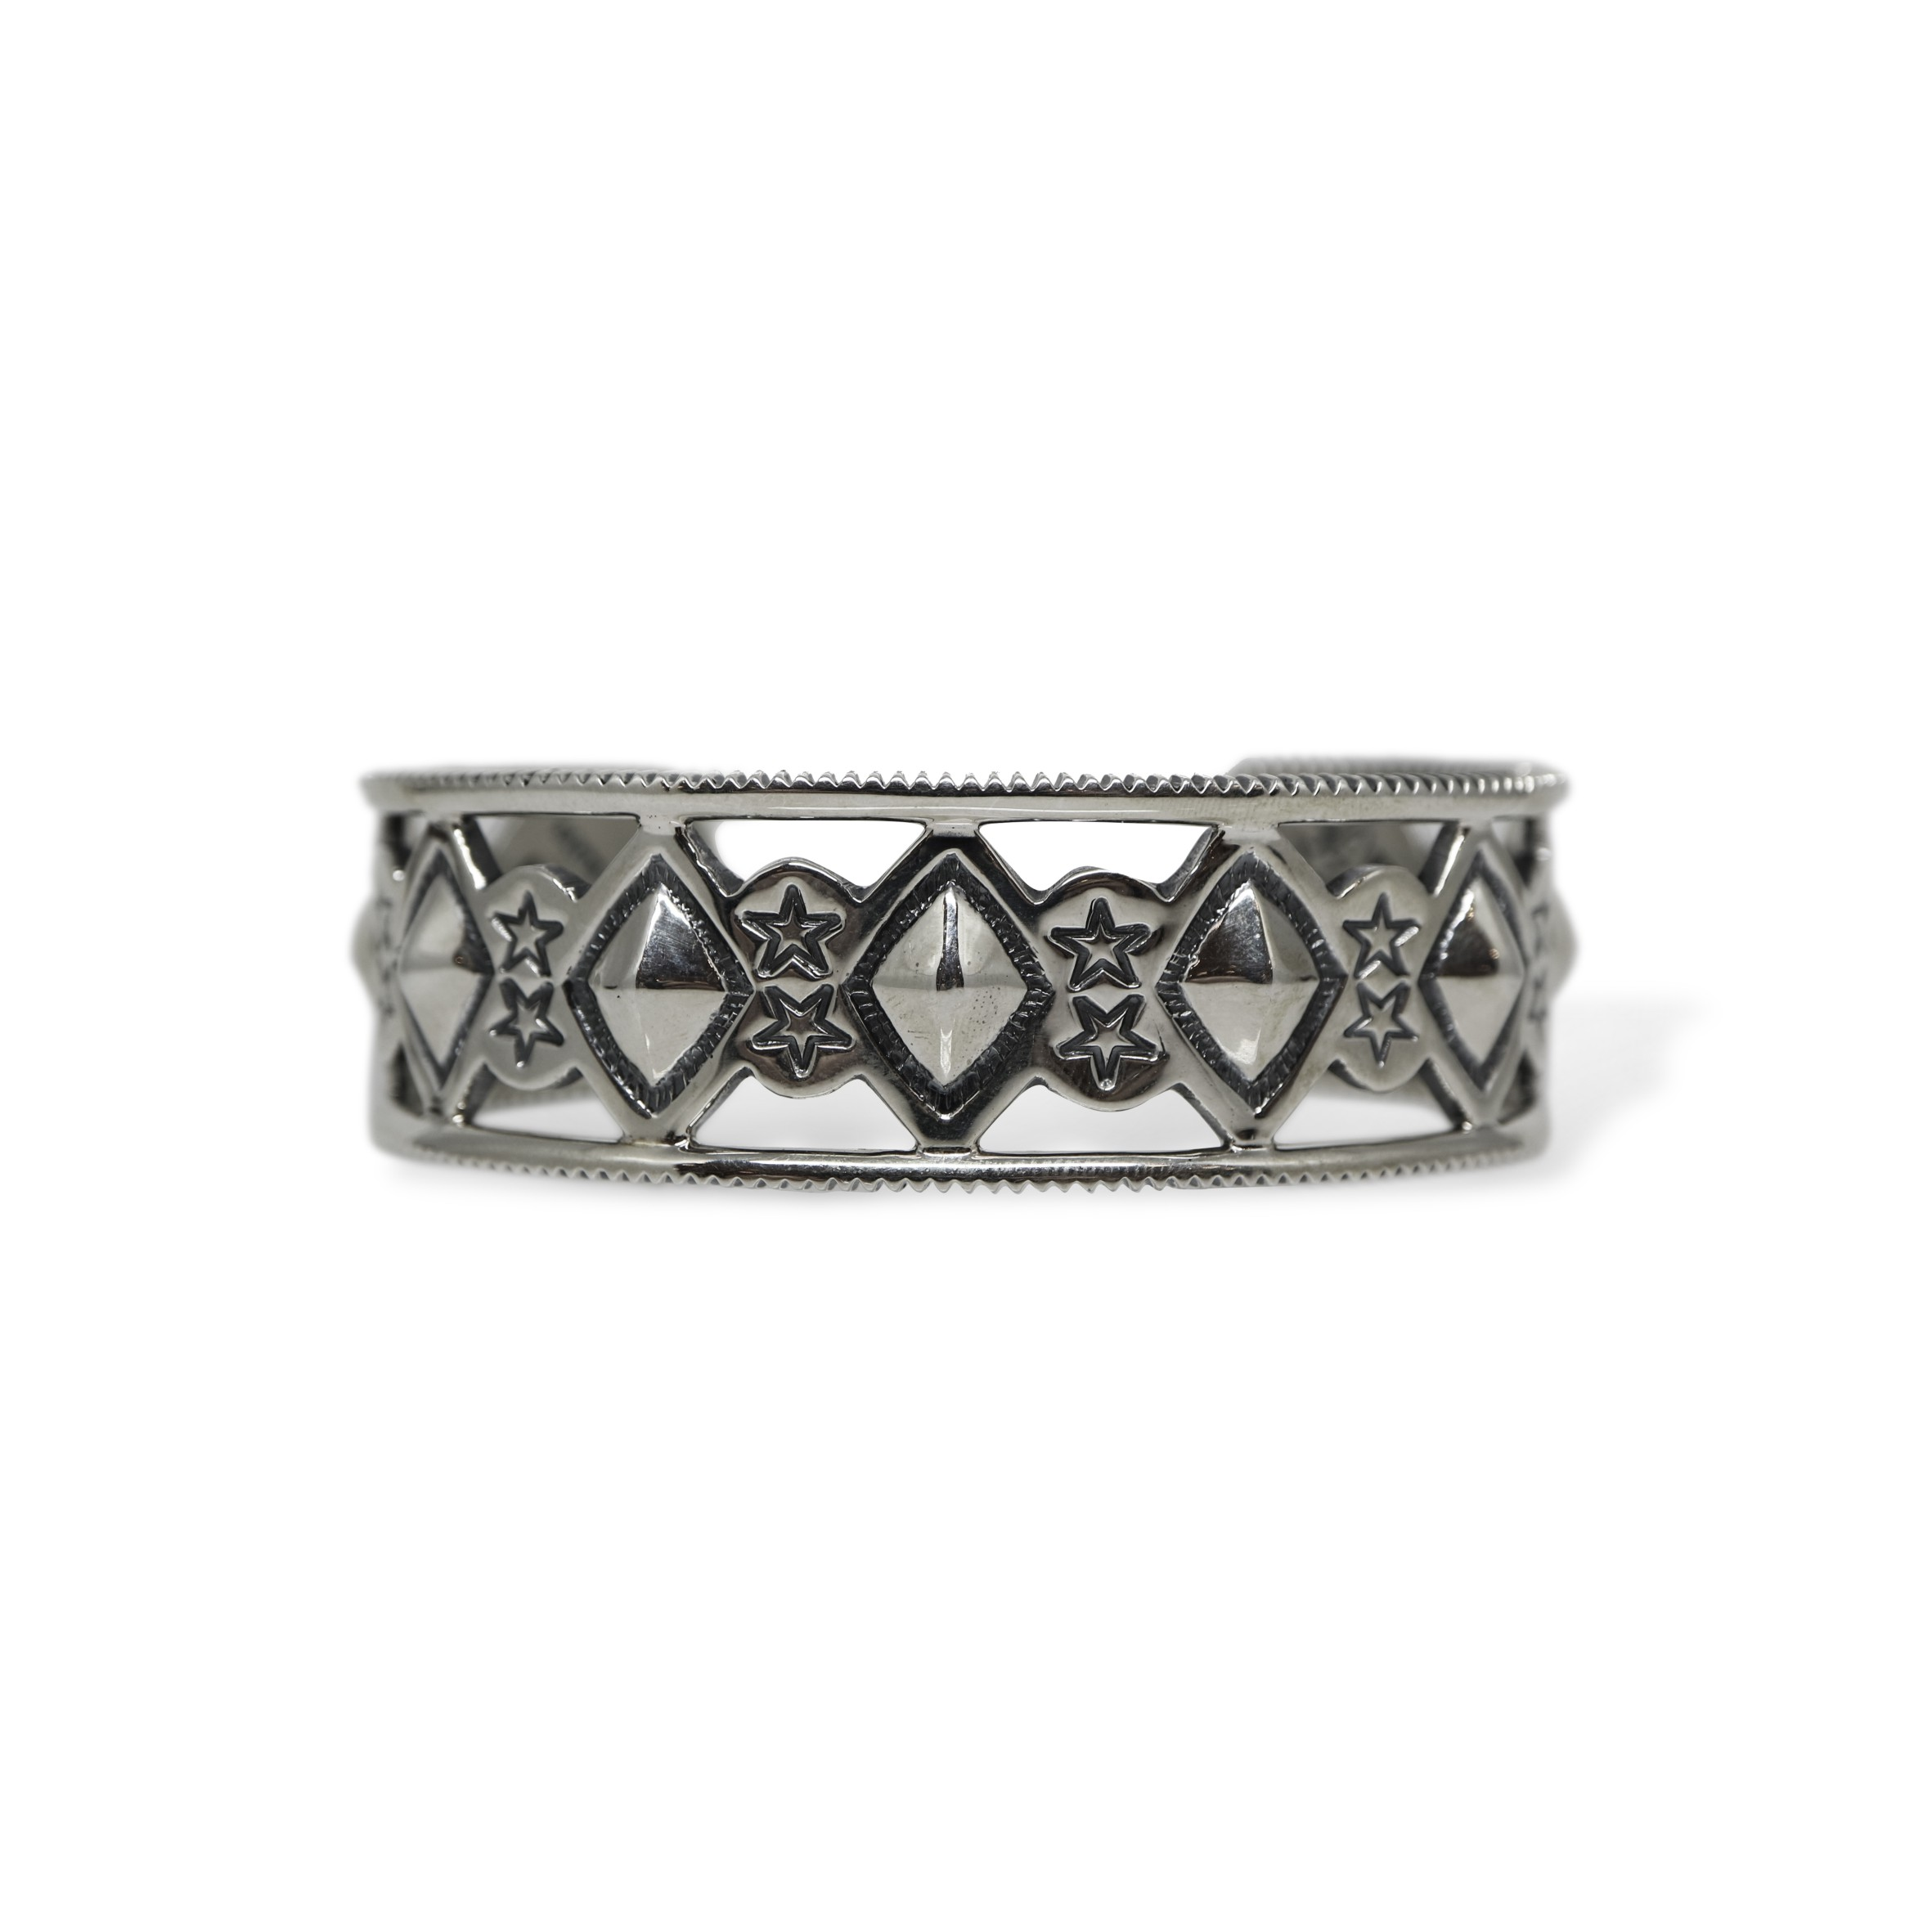 CUT OUT DIAMONDS & STARS W / COIN EDGE CUFF  [USD $1420]